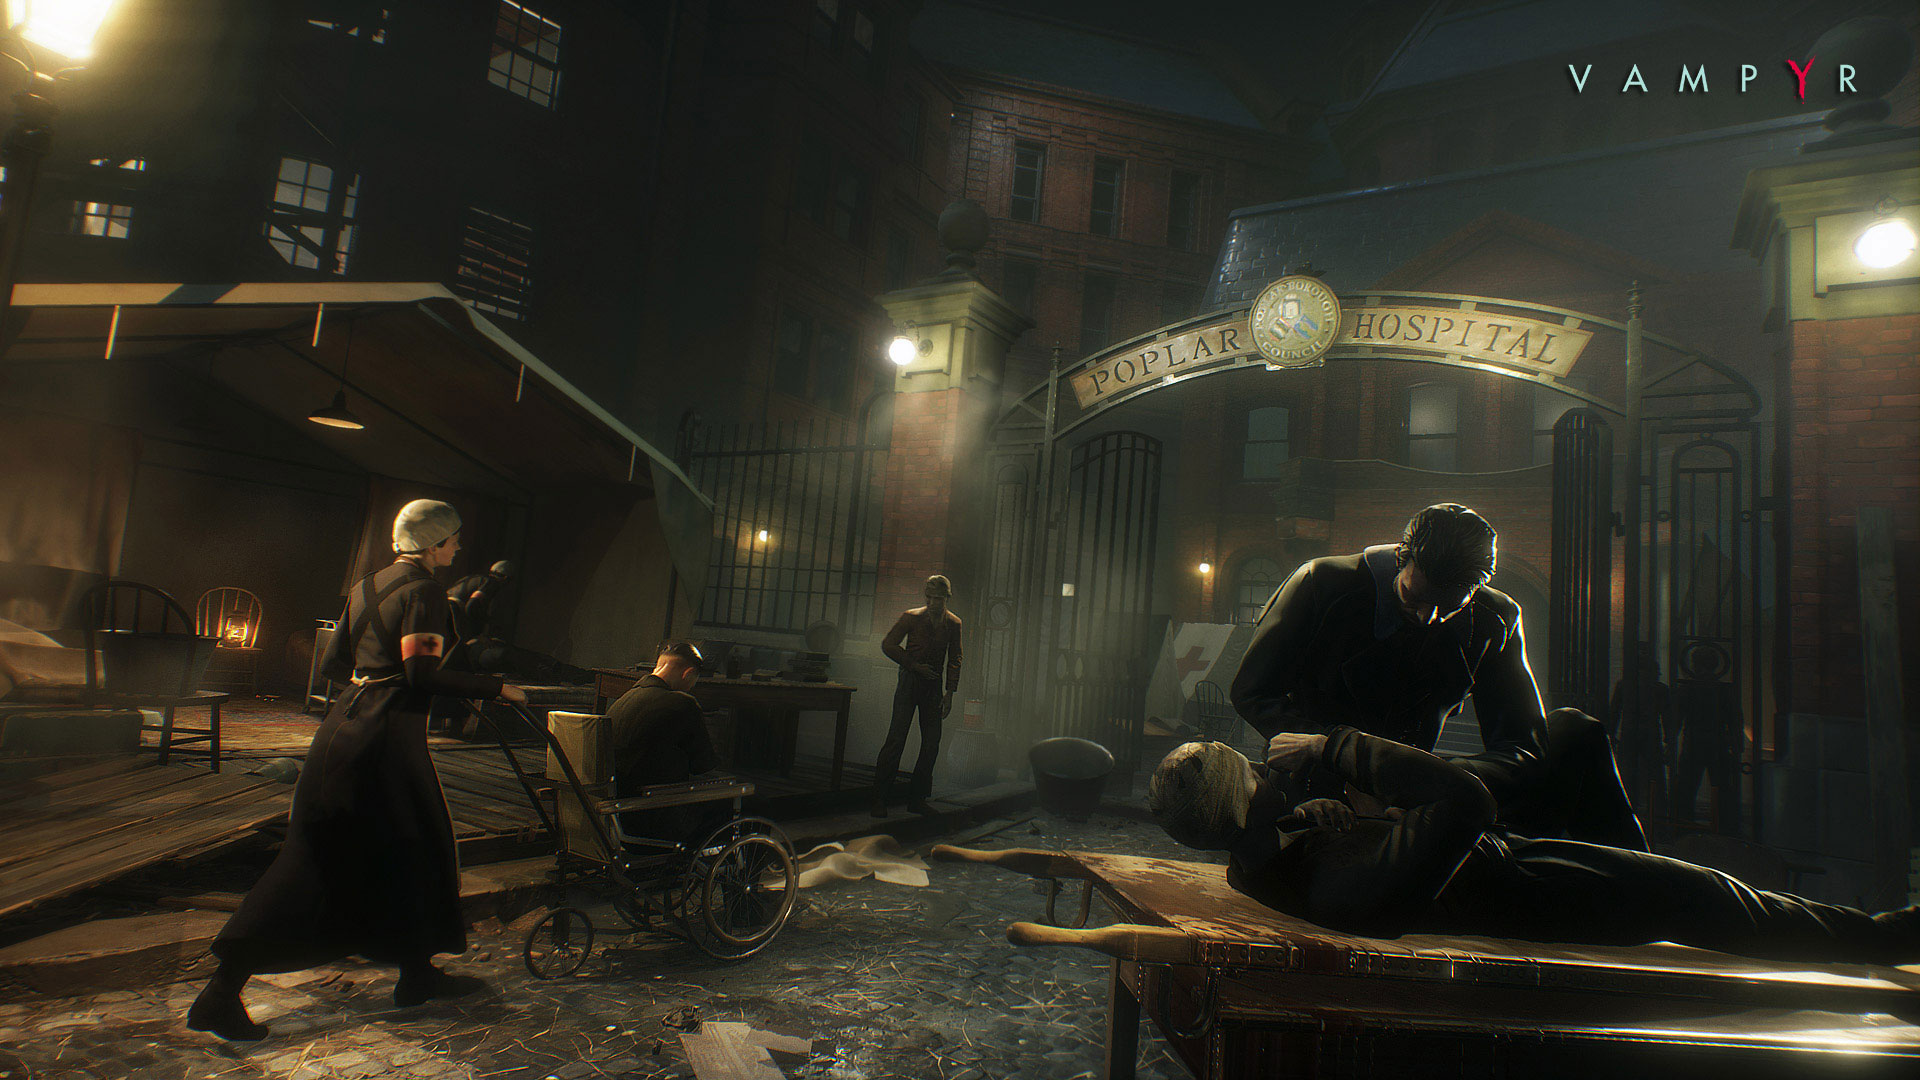 Vampyr Release Date News, Gameplay and More.